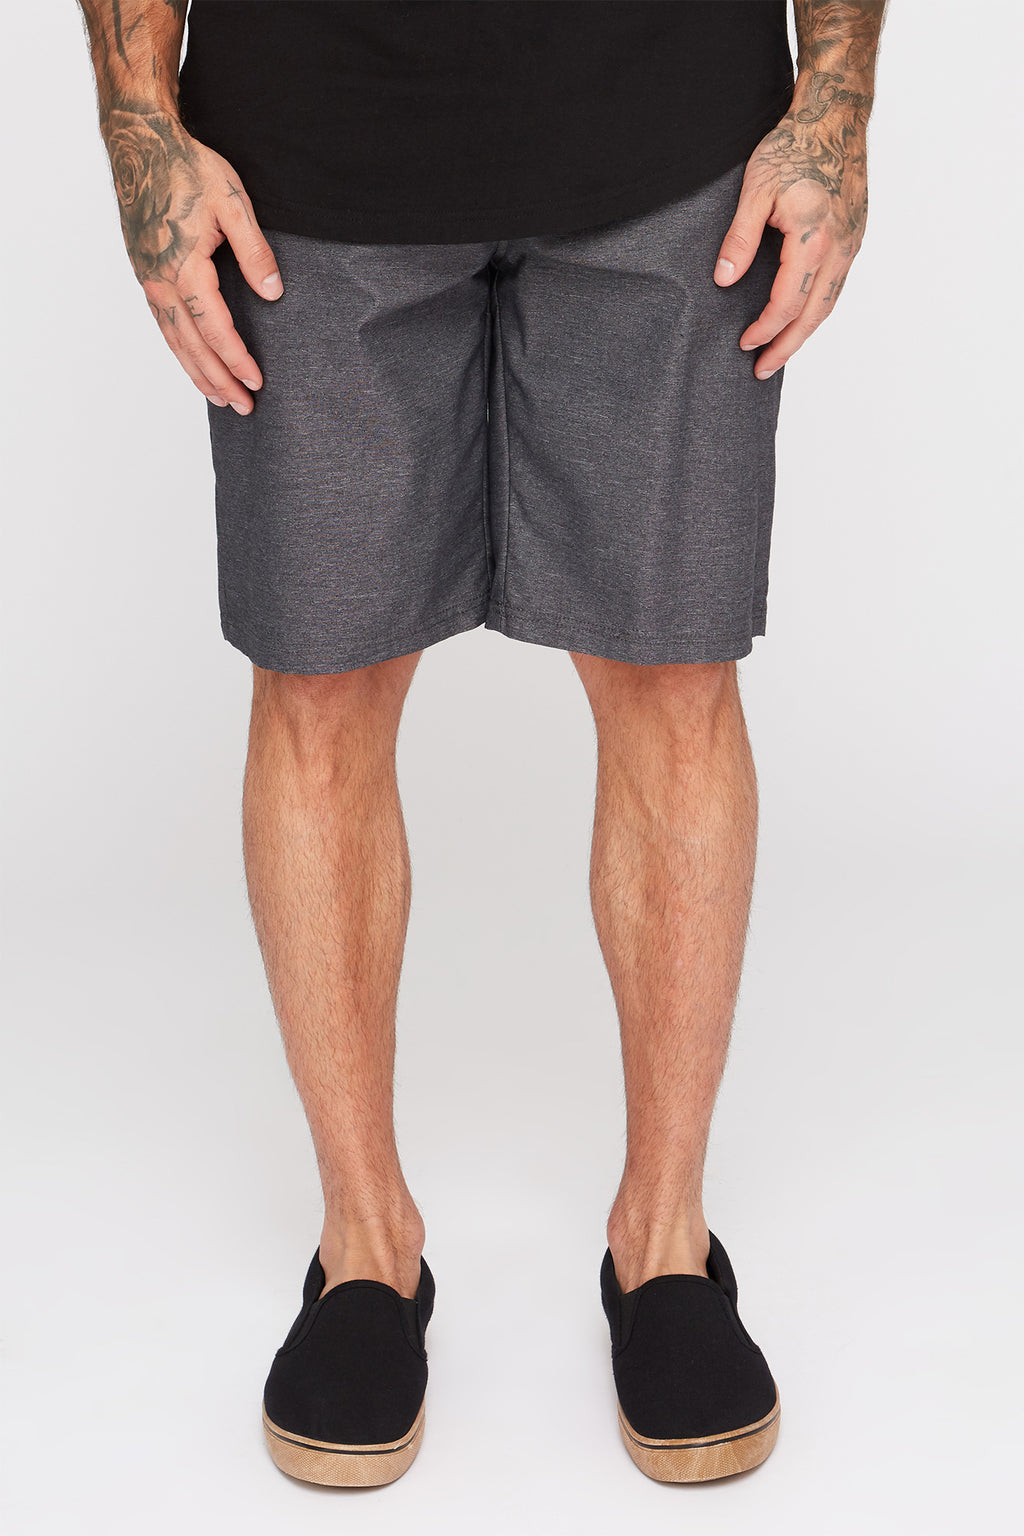 Zoo York Mens Solid Street Shorts